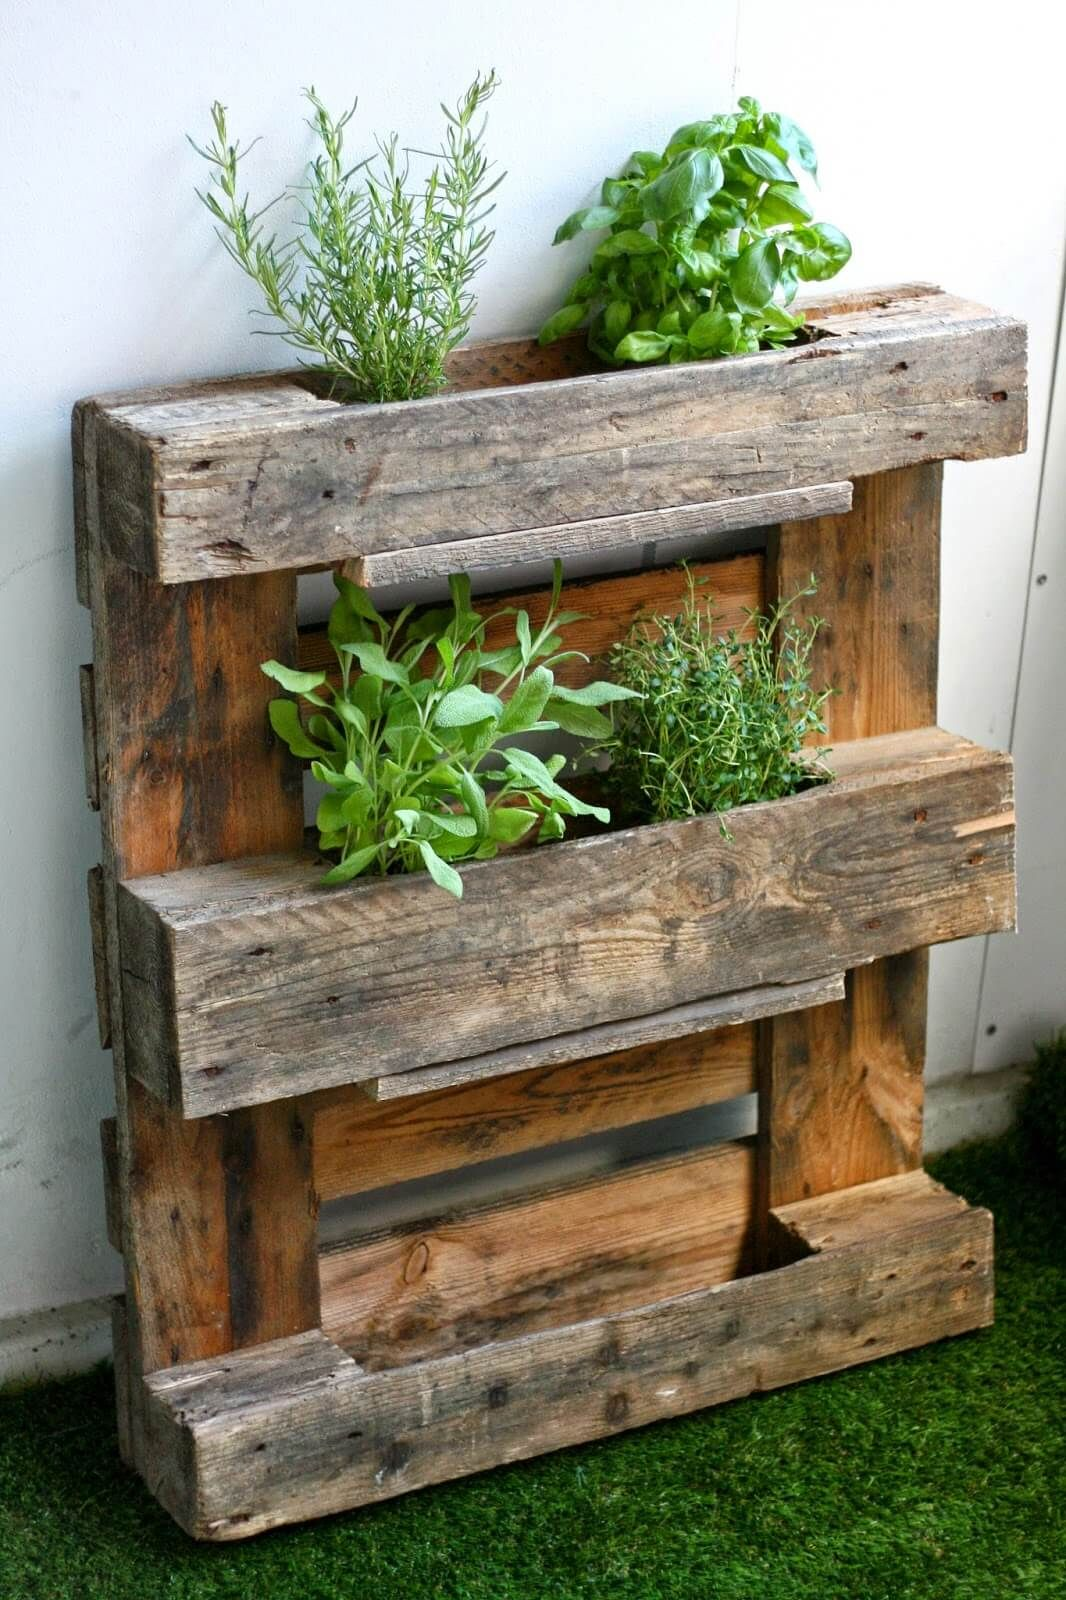 23 Awesome Diy Wood Pallet Ideas Diy Pallet Projects Wood Diy